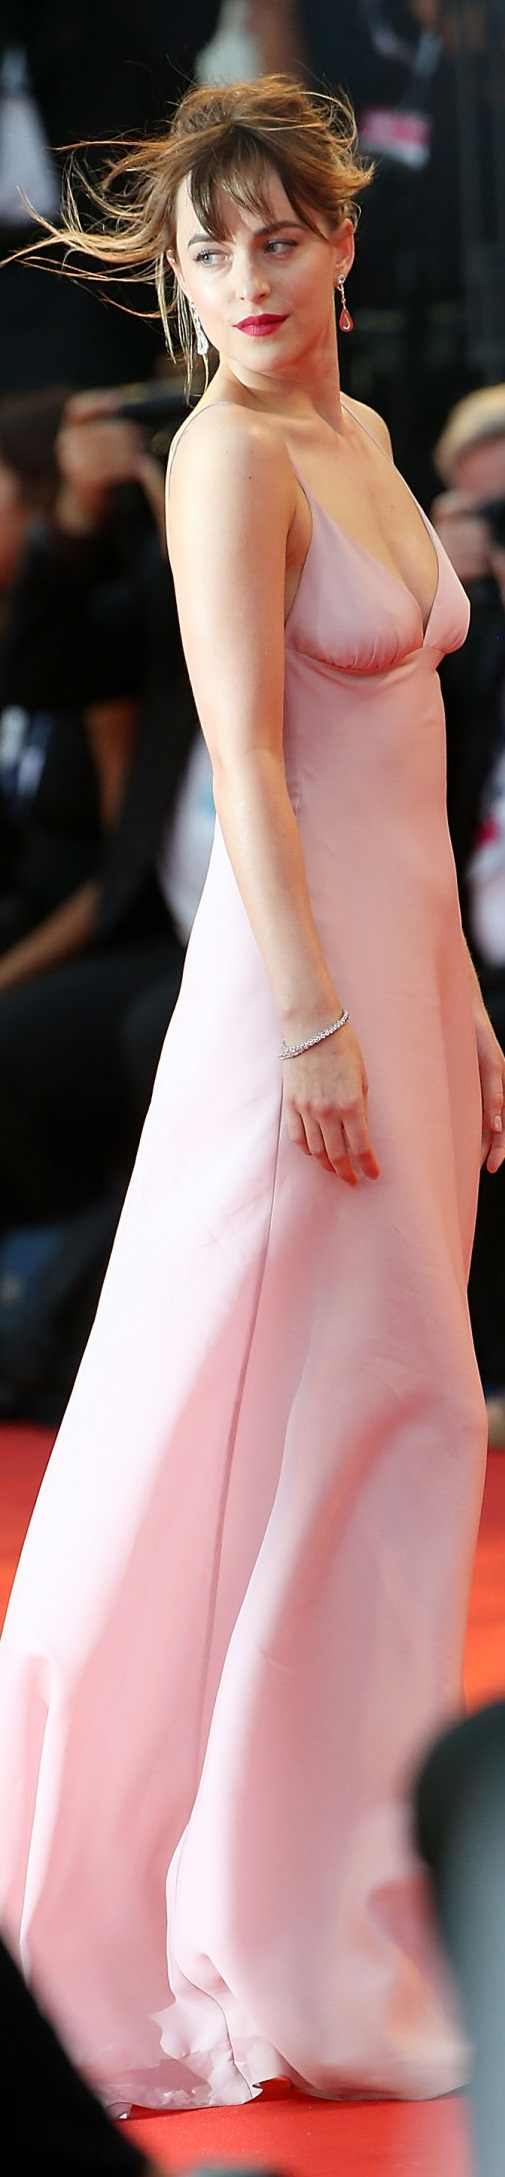 Dakota Johnson - Prada Venice Film Festival 2015 | Dakota Johnson ...